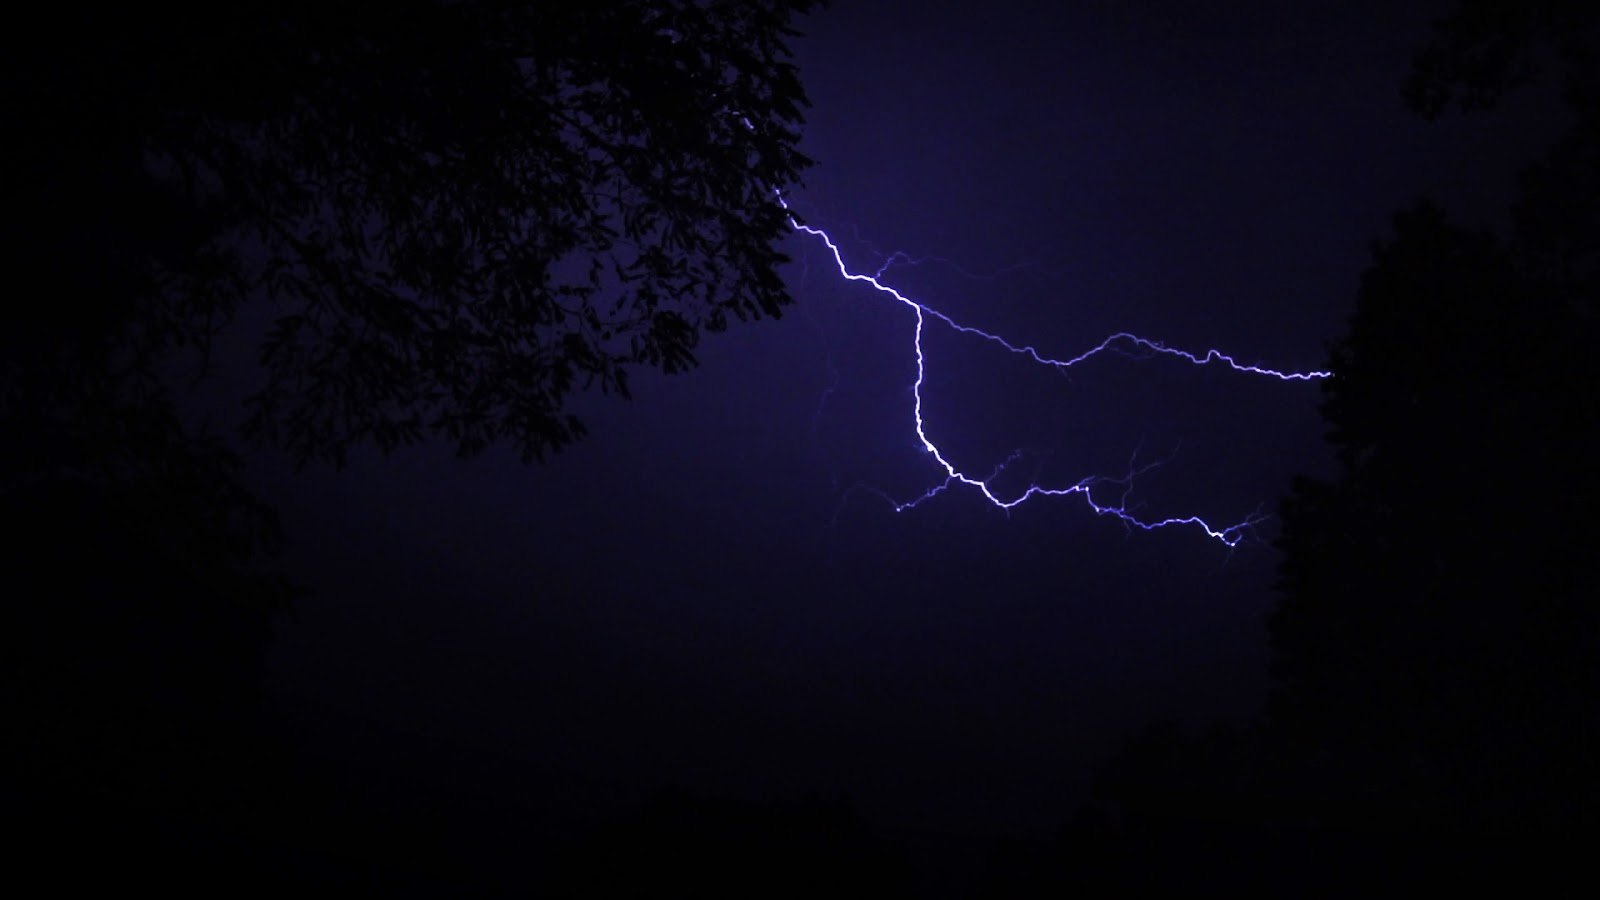 A brief still of a longer and available stock footage clip of a lightning storm.